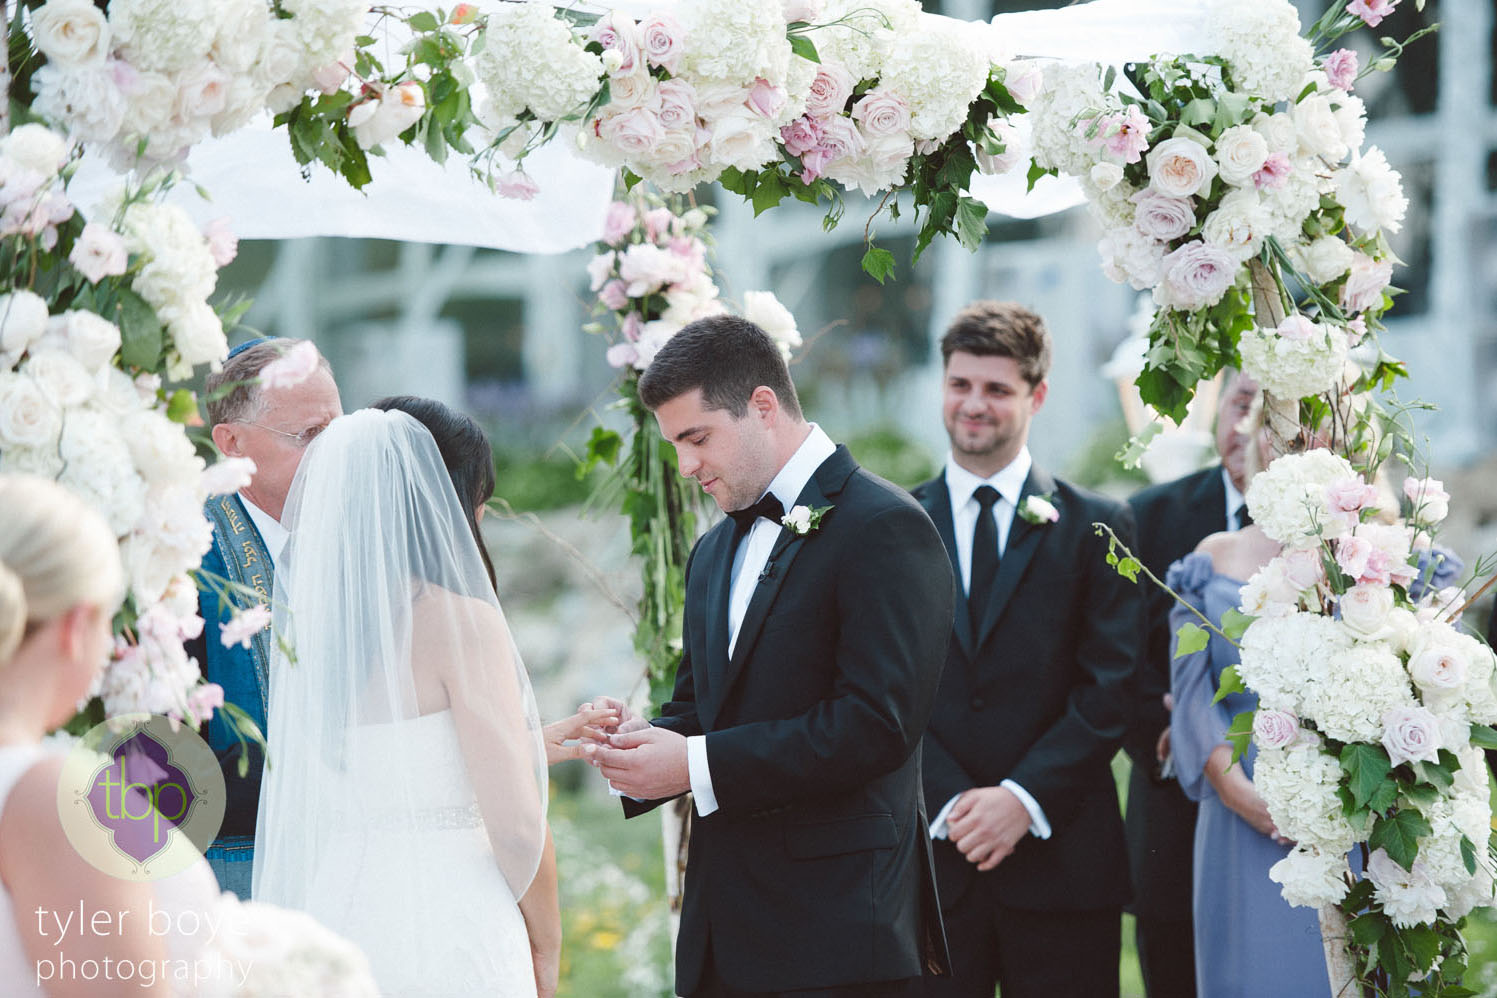 Tyler Boye Photography  | Wedding Ceremony | The Manor House at Prophecy Creek Park